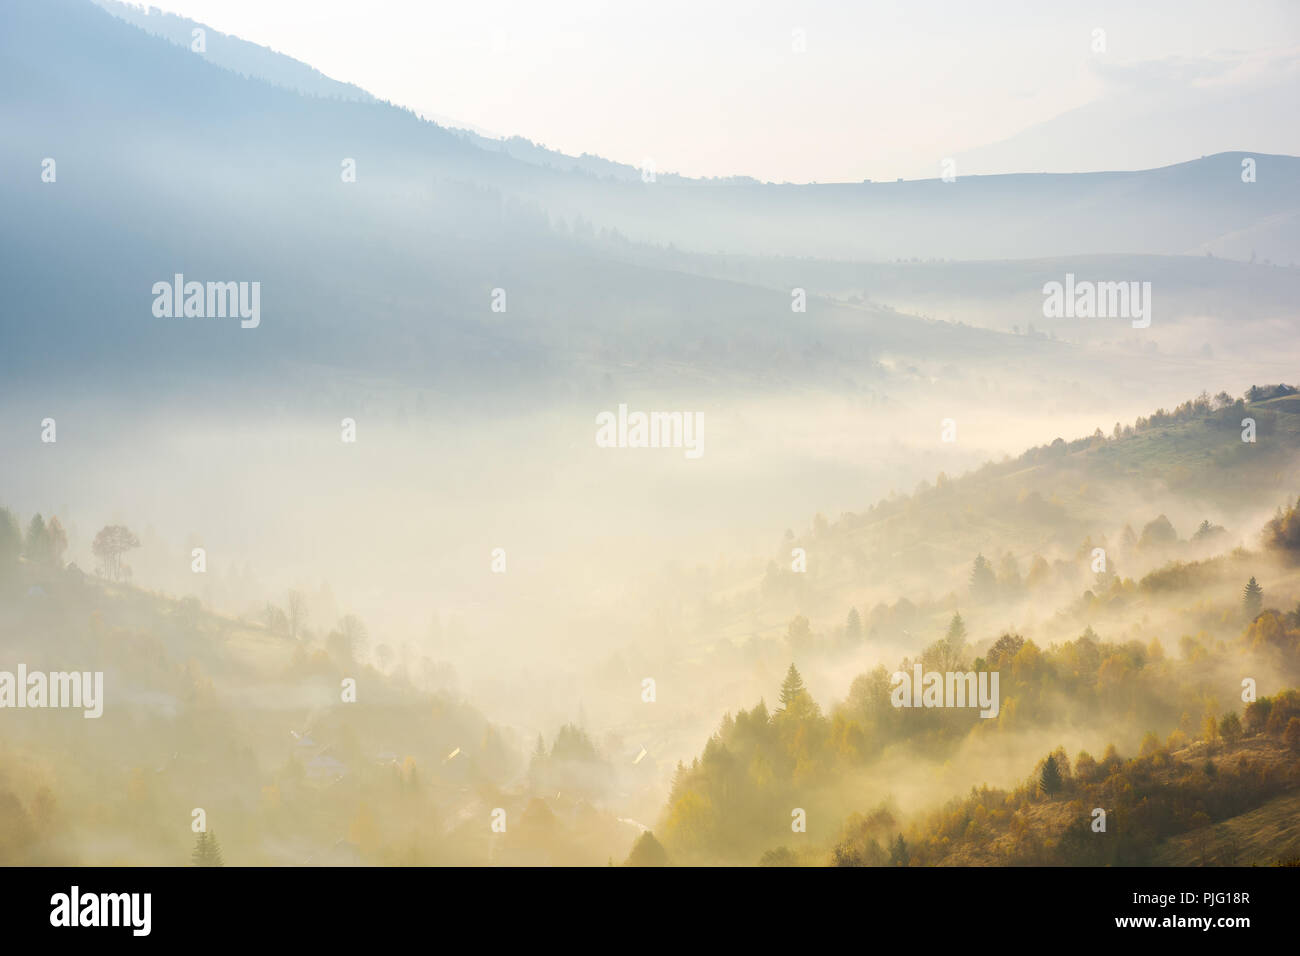 valley in fog at sunrise. bursts of light come through haze among the trees down the hill. wonderful autumn atmosphere in mountains - Stock Image